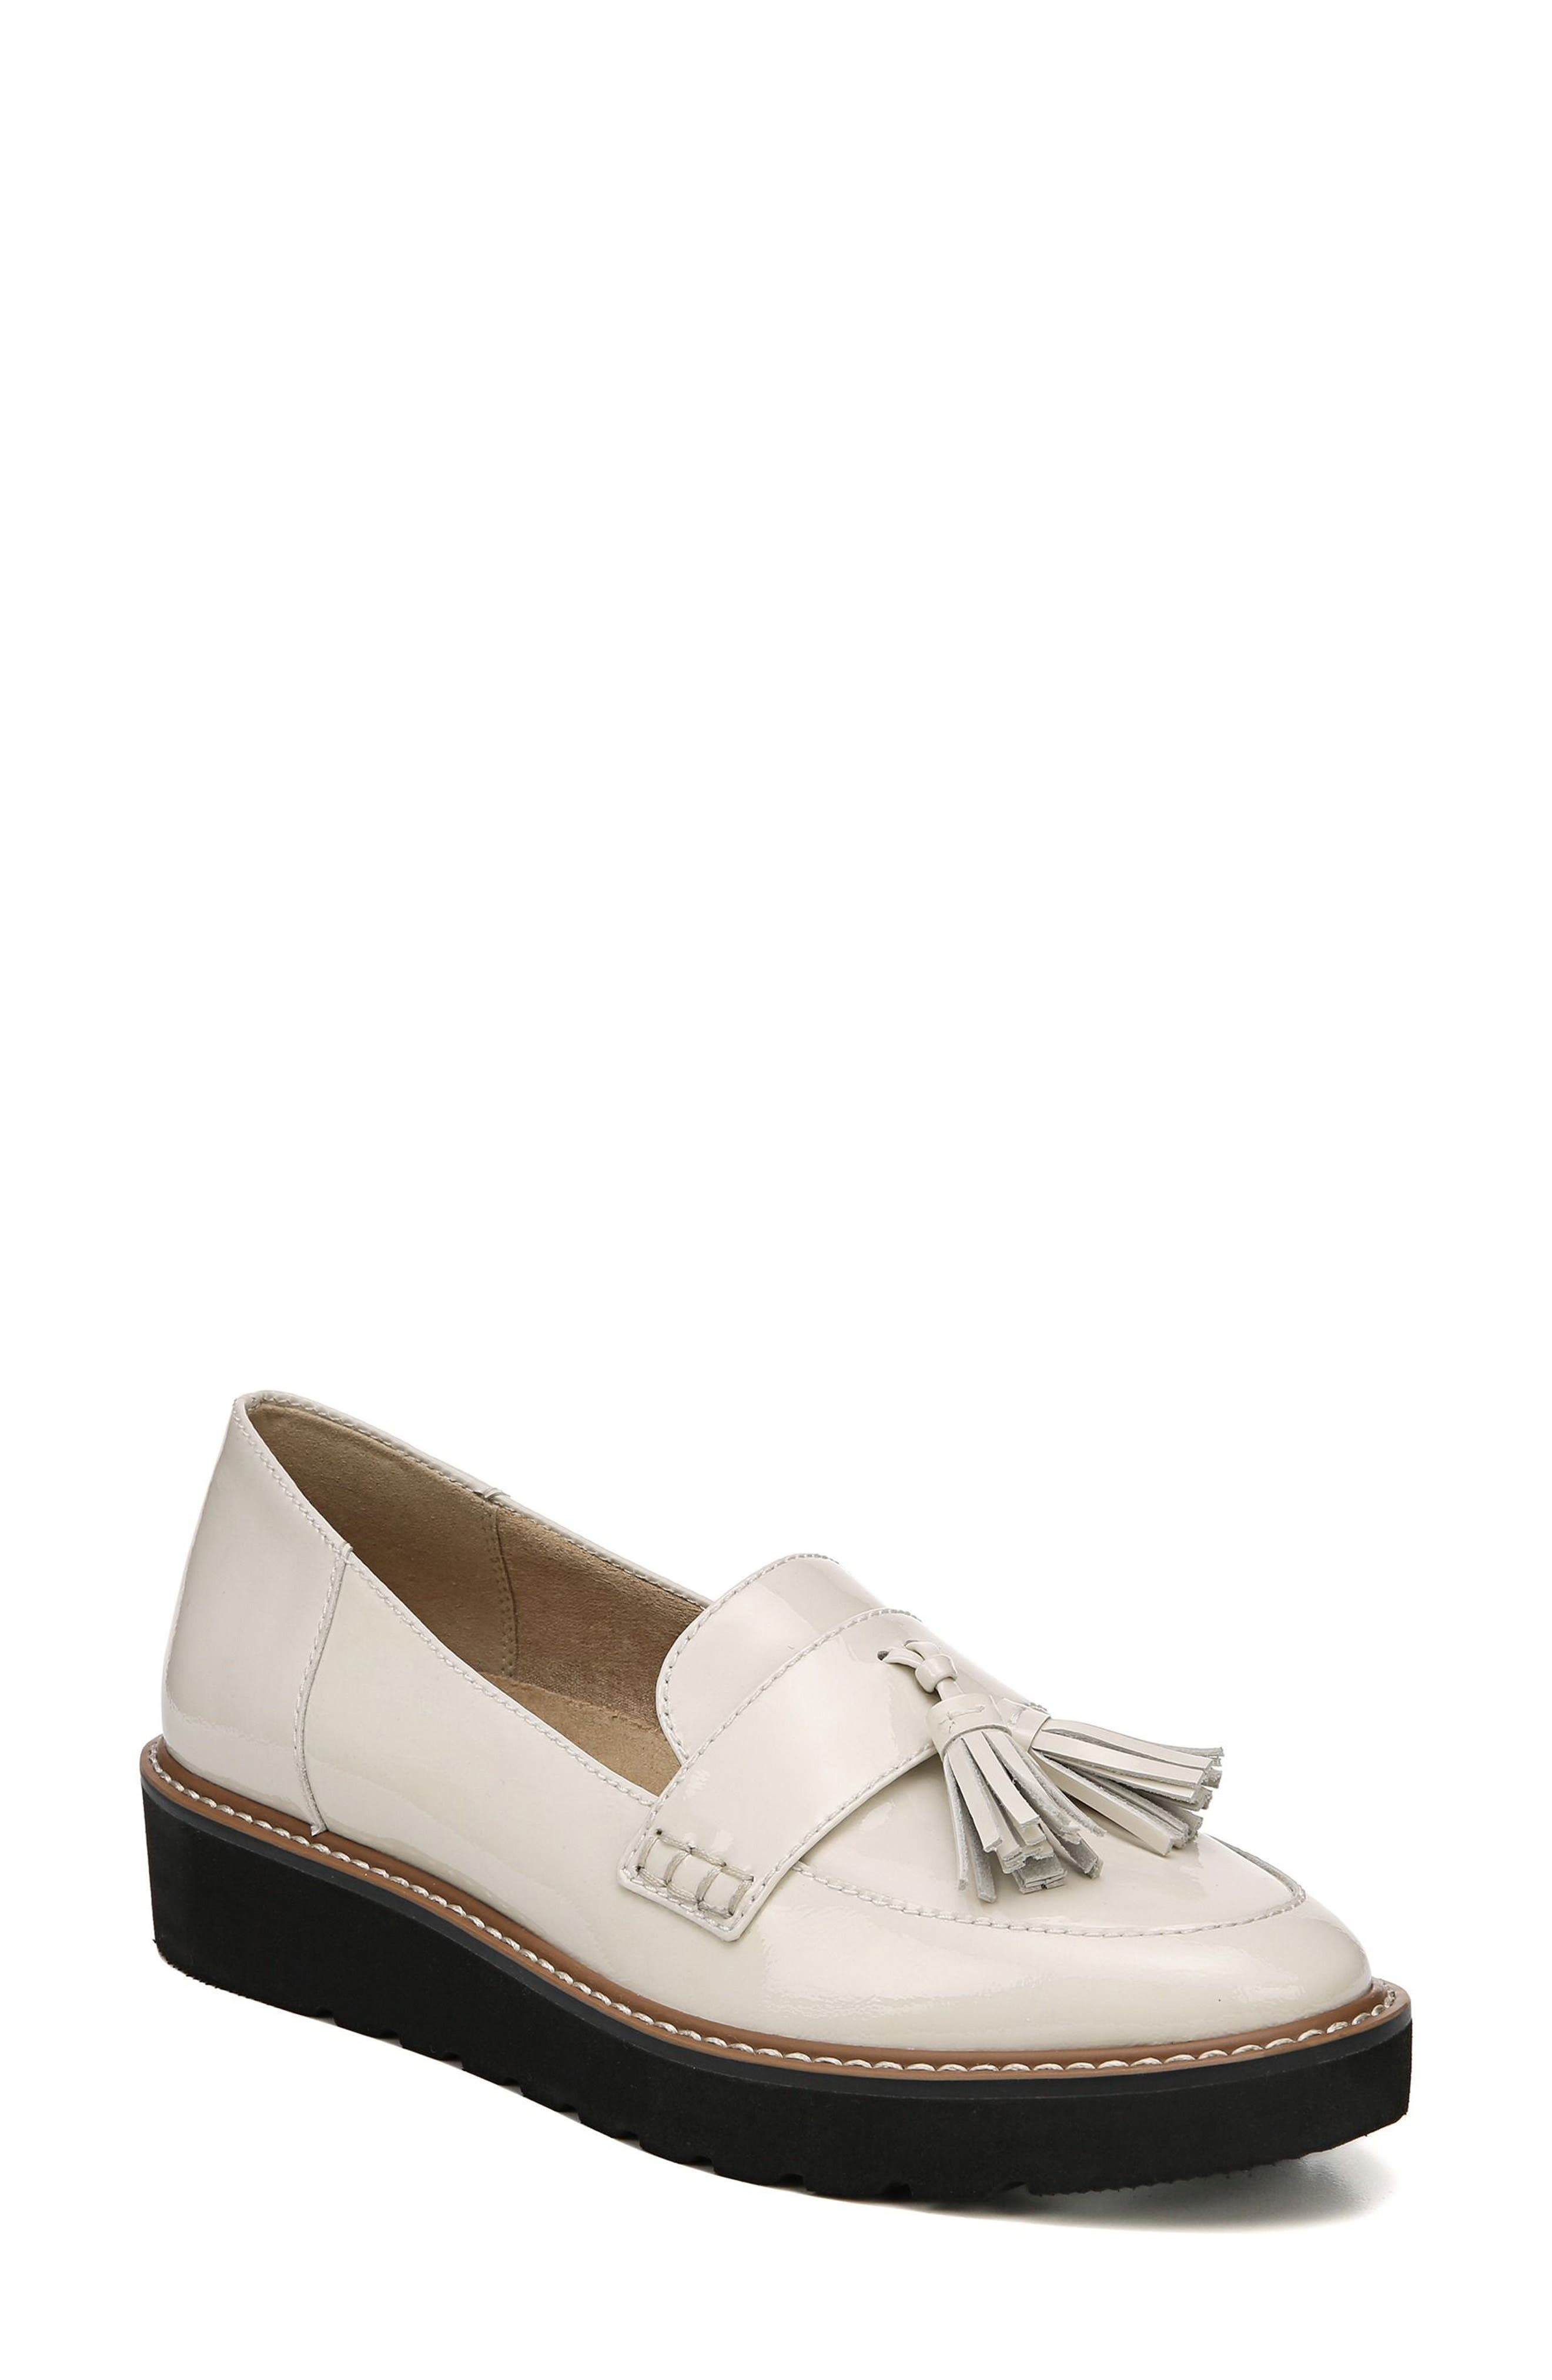 August Loafer,                         Main,                         color, ALABASTER LEATHER